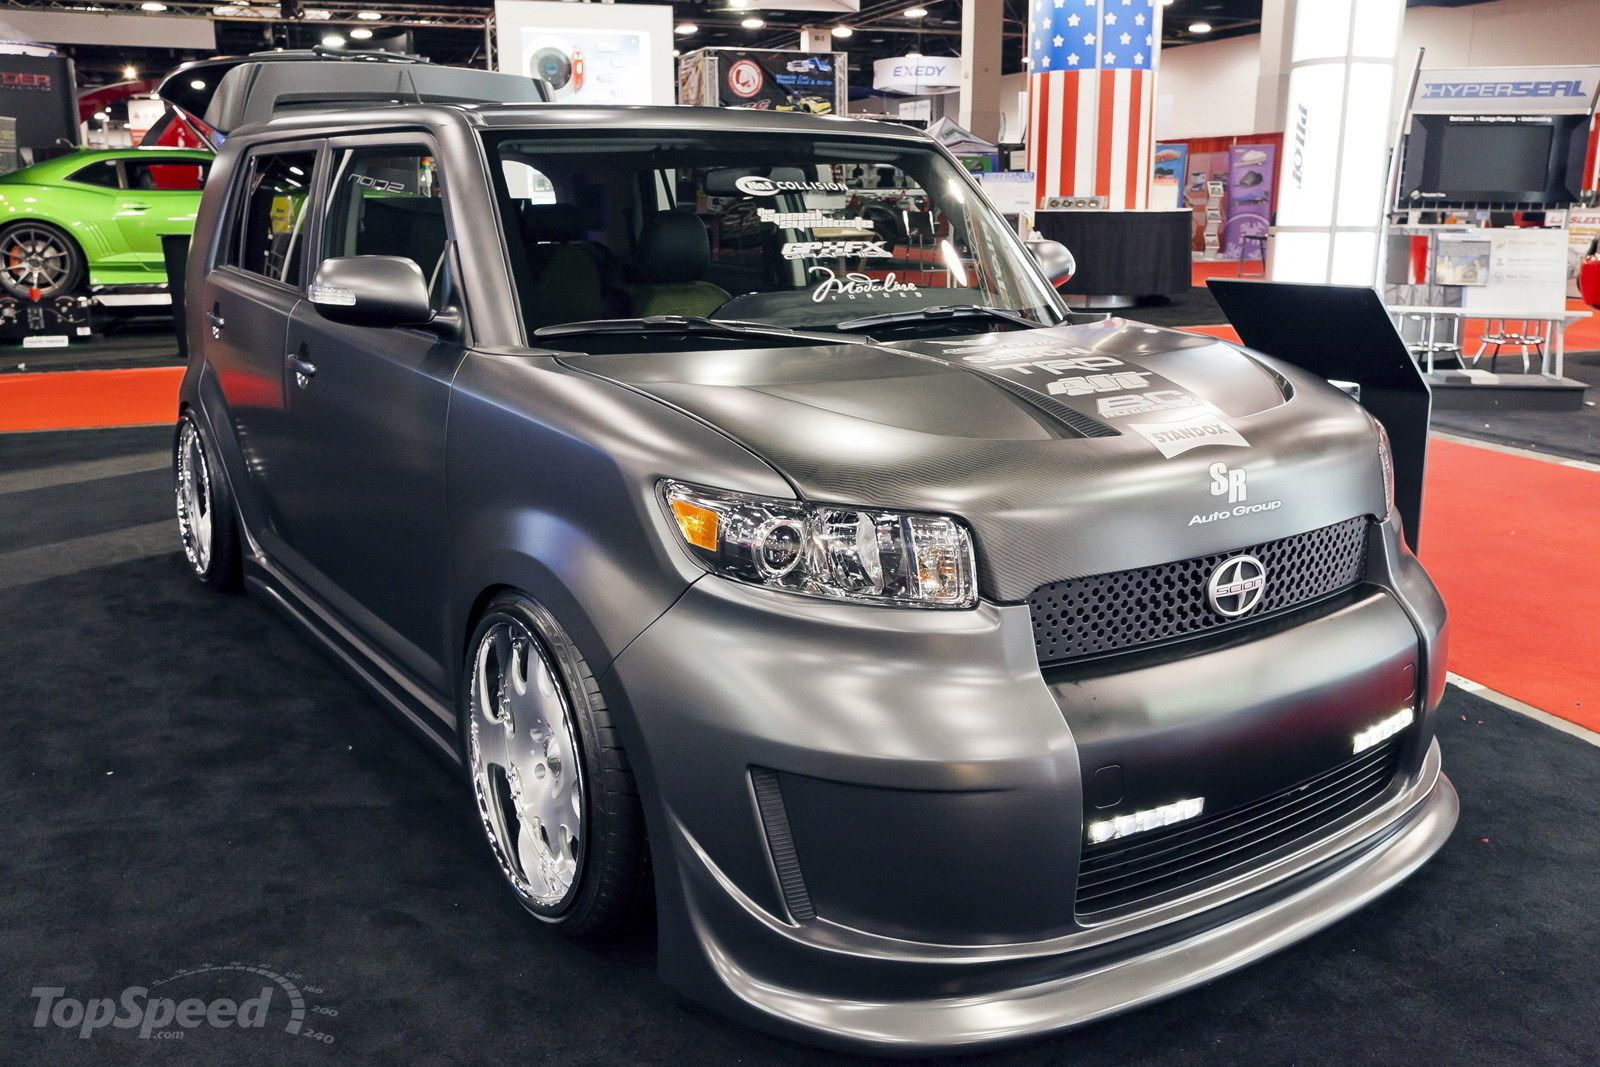 2011 Scion Xb Project Anarchy By Sr Auto Group Pictures Photos Wallpapers Top Speed Scion Xb Toyota Scion Xb Scion